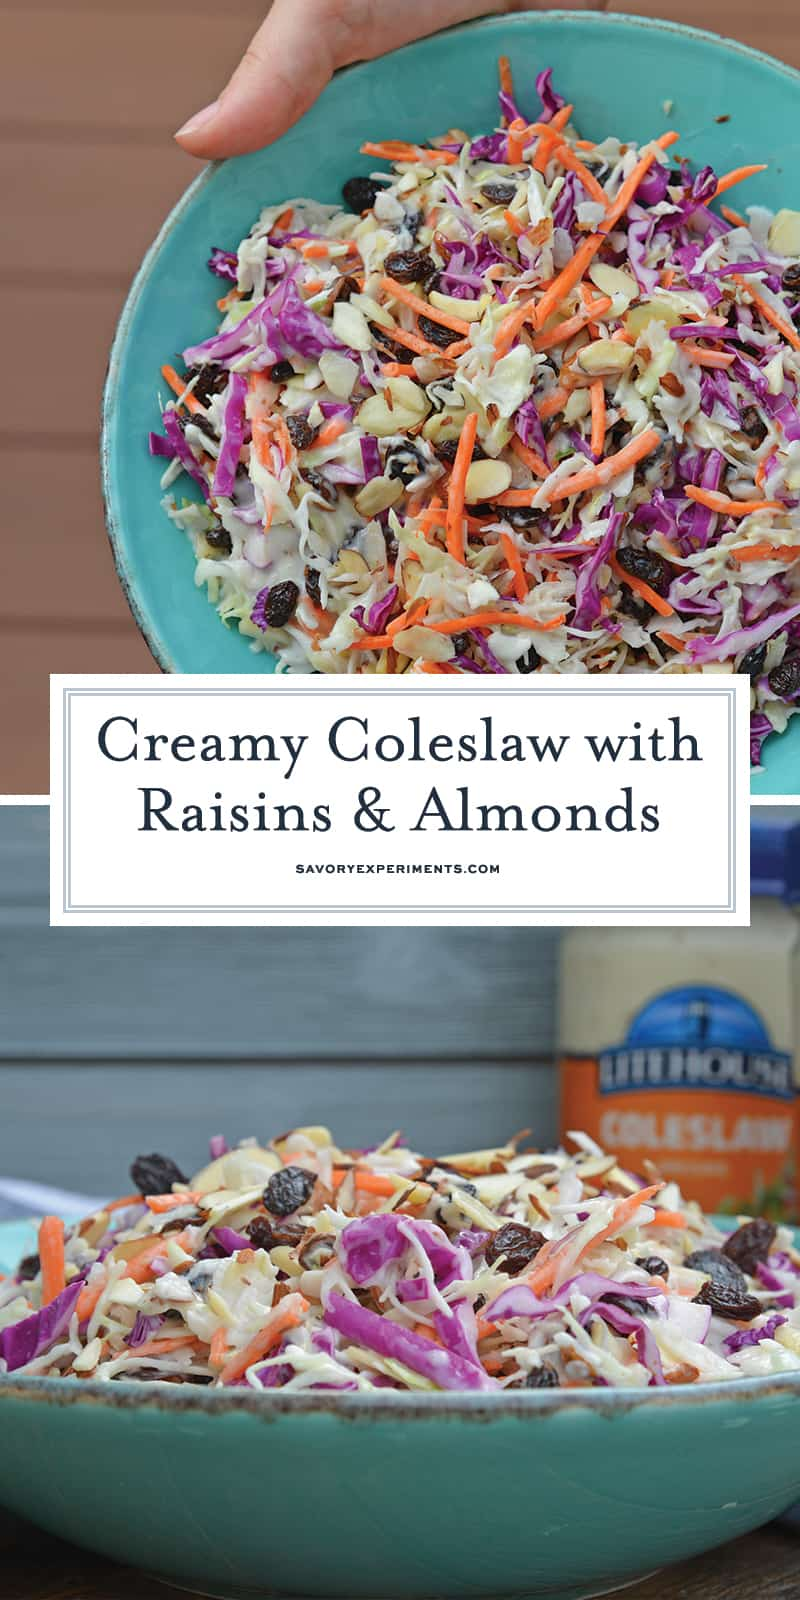 Creamy Coleslaw with almonds and raisins is an easy coleslaw recipe that is mix and serve. Coleslaw dressing, almonds, raisins and crisp cabbage mix are the perfect BBQ dish. #creamycoleslaw #coleslawrecipe www.savoryexperiments.com